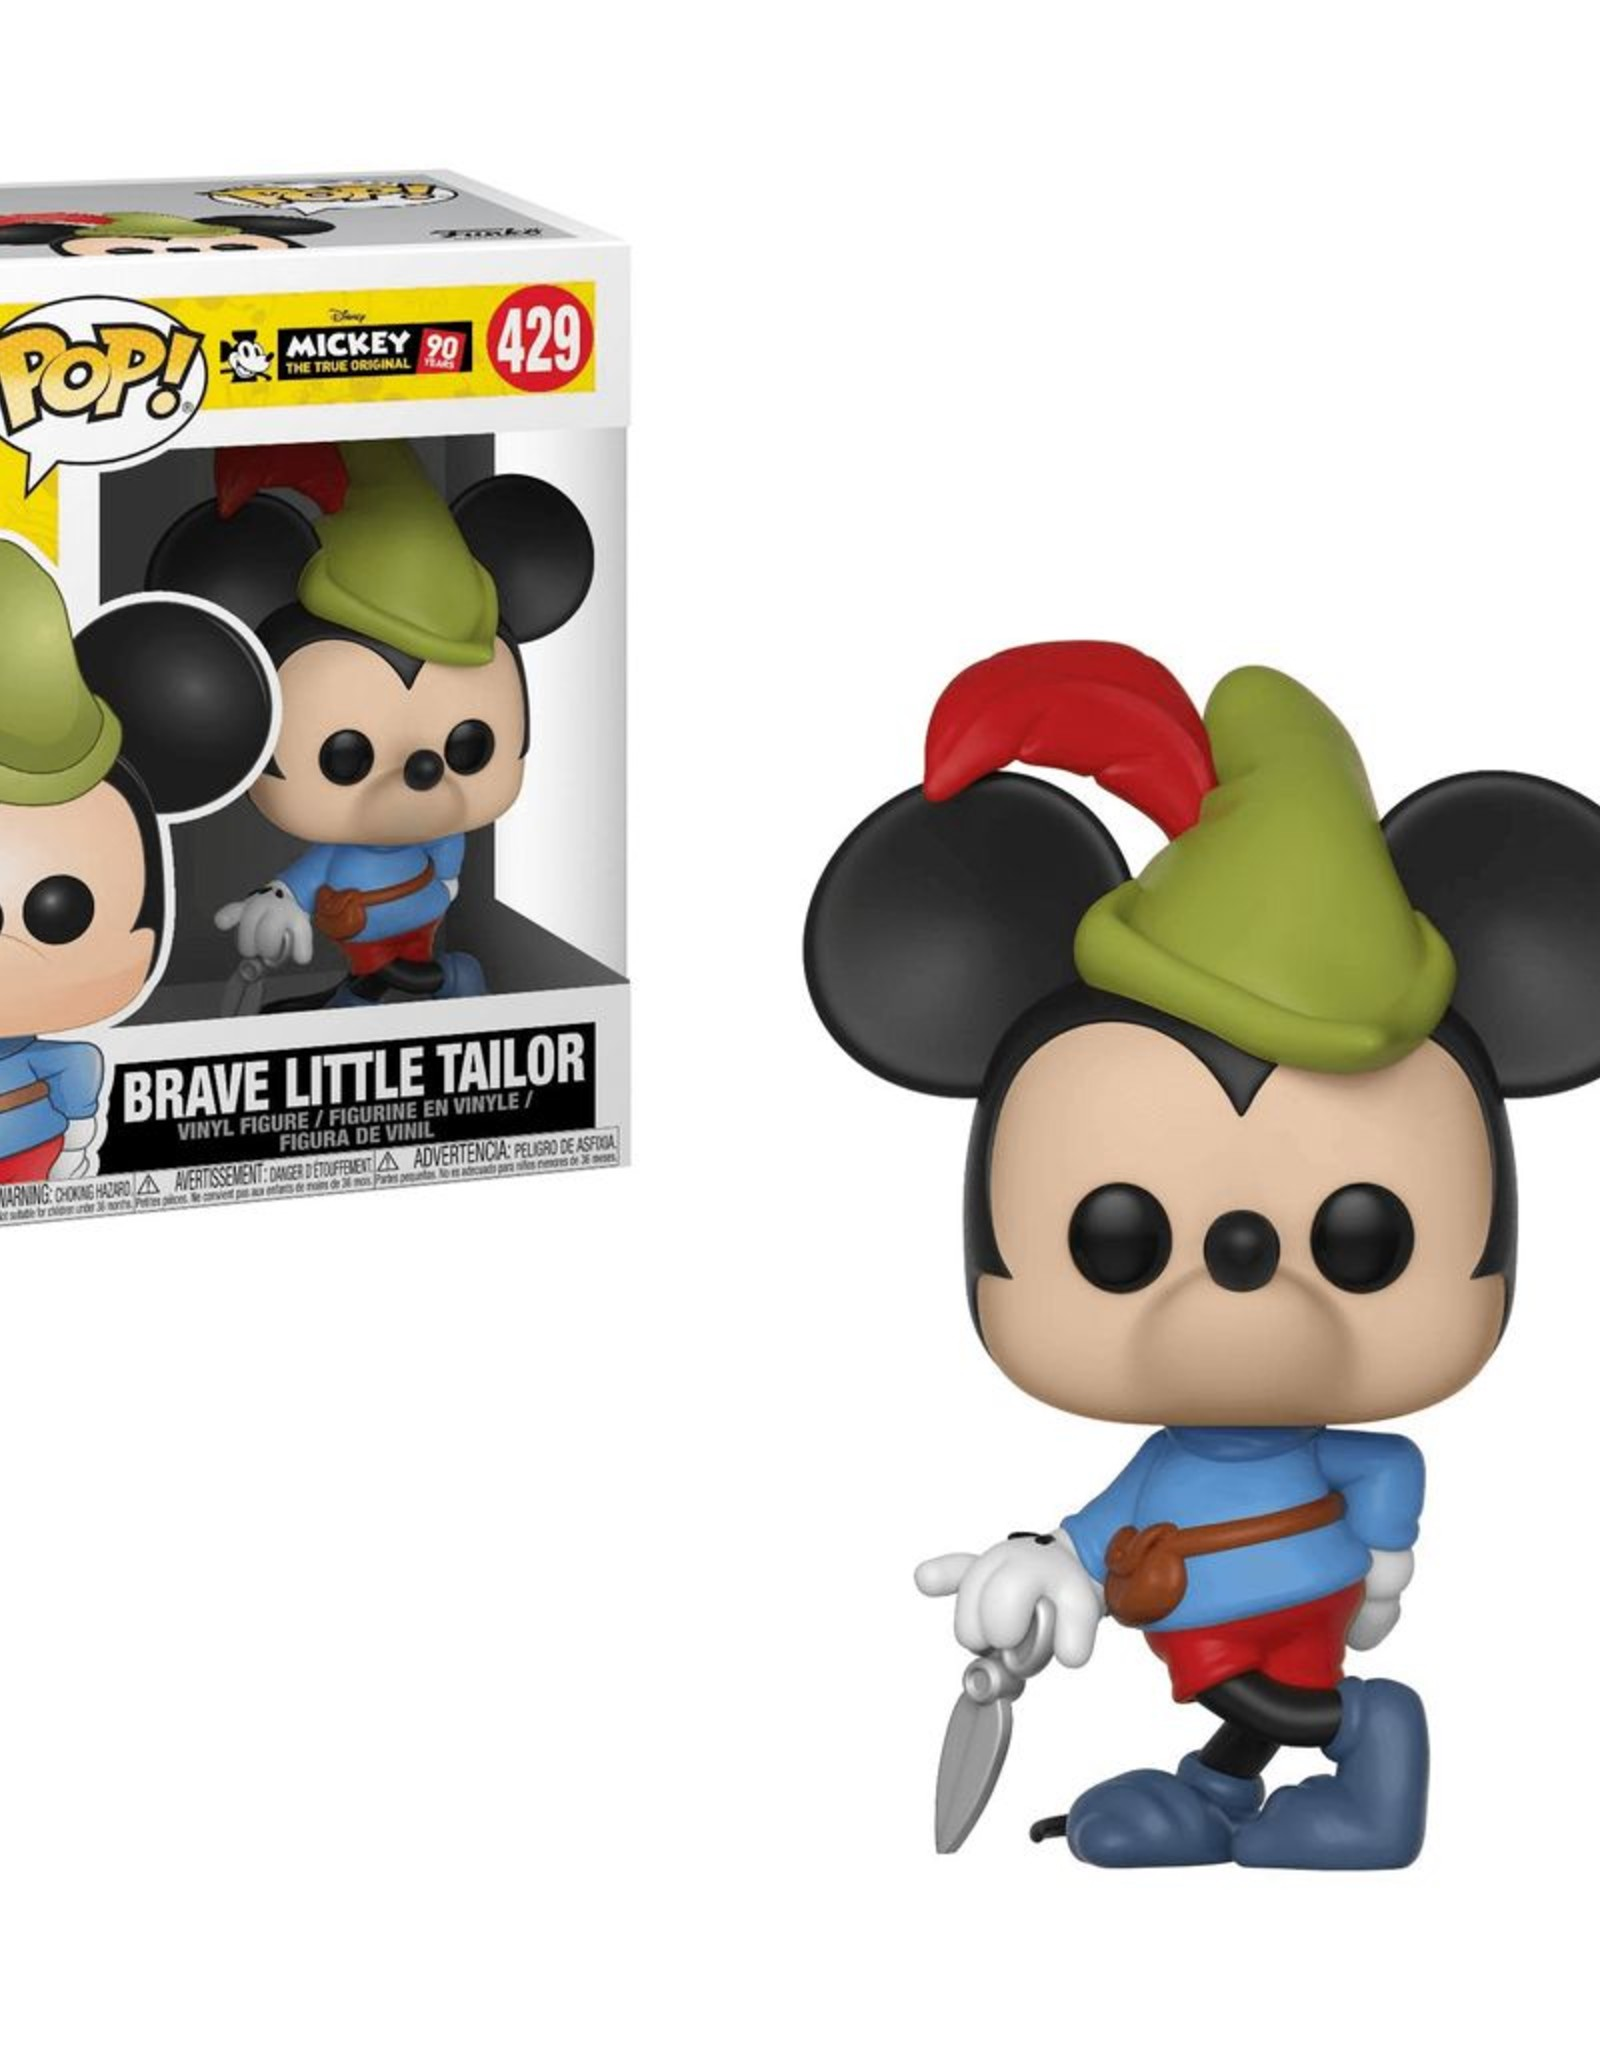 Funko Pop Vinyl - Mickey's 90th - Brave Little Tailor Mickey